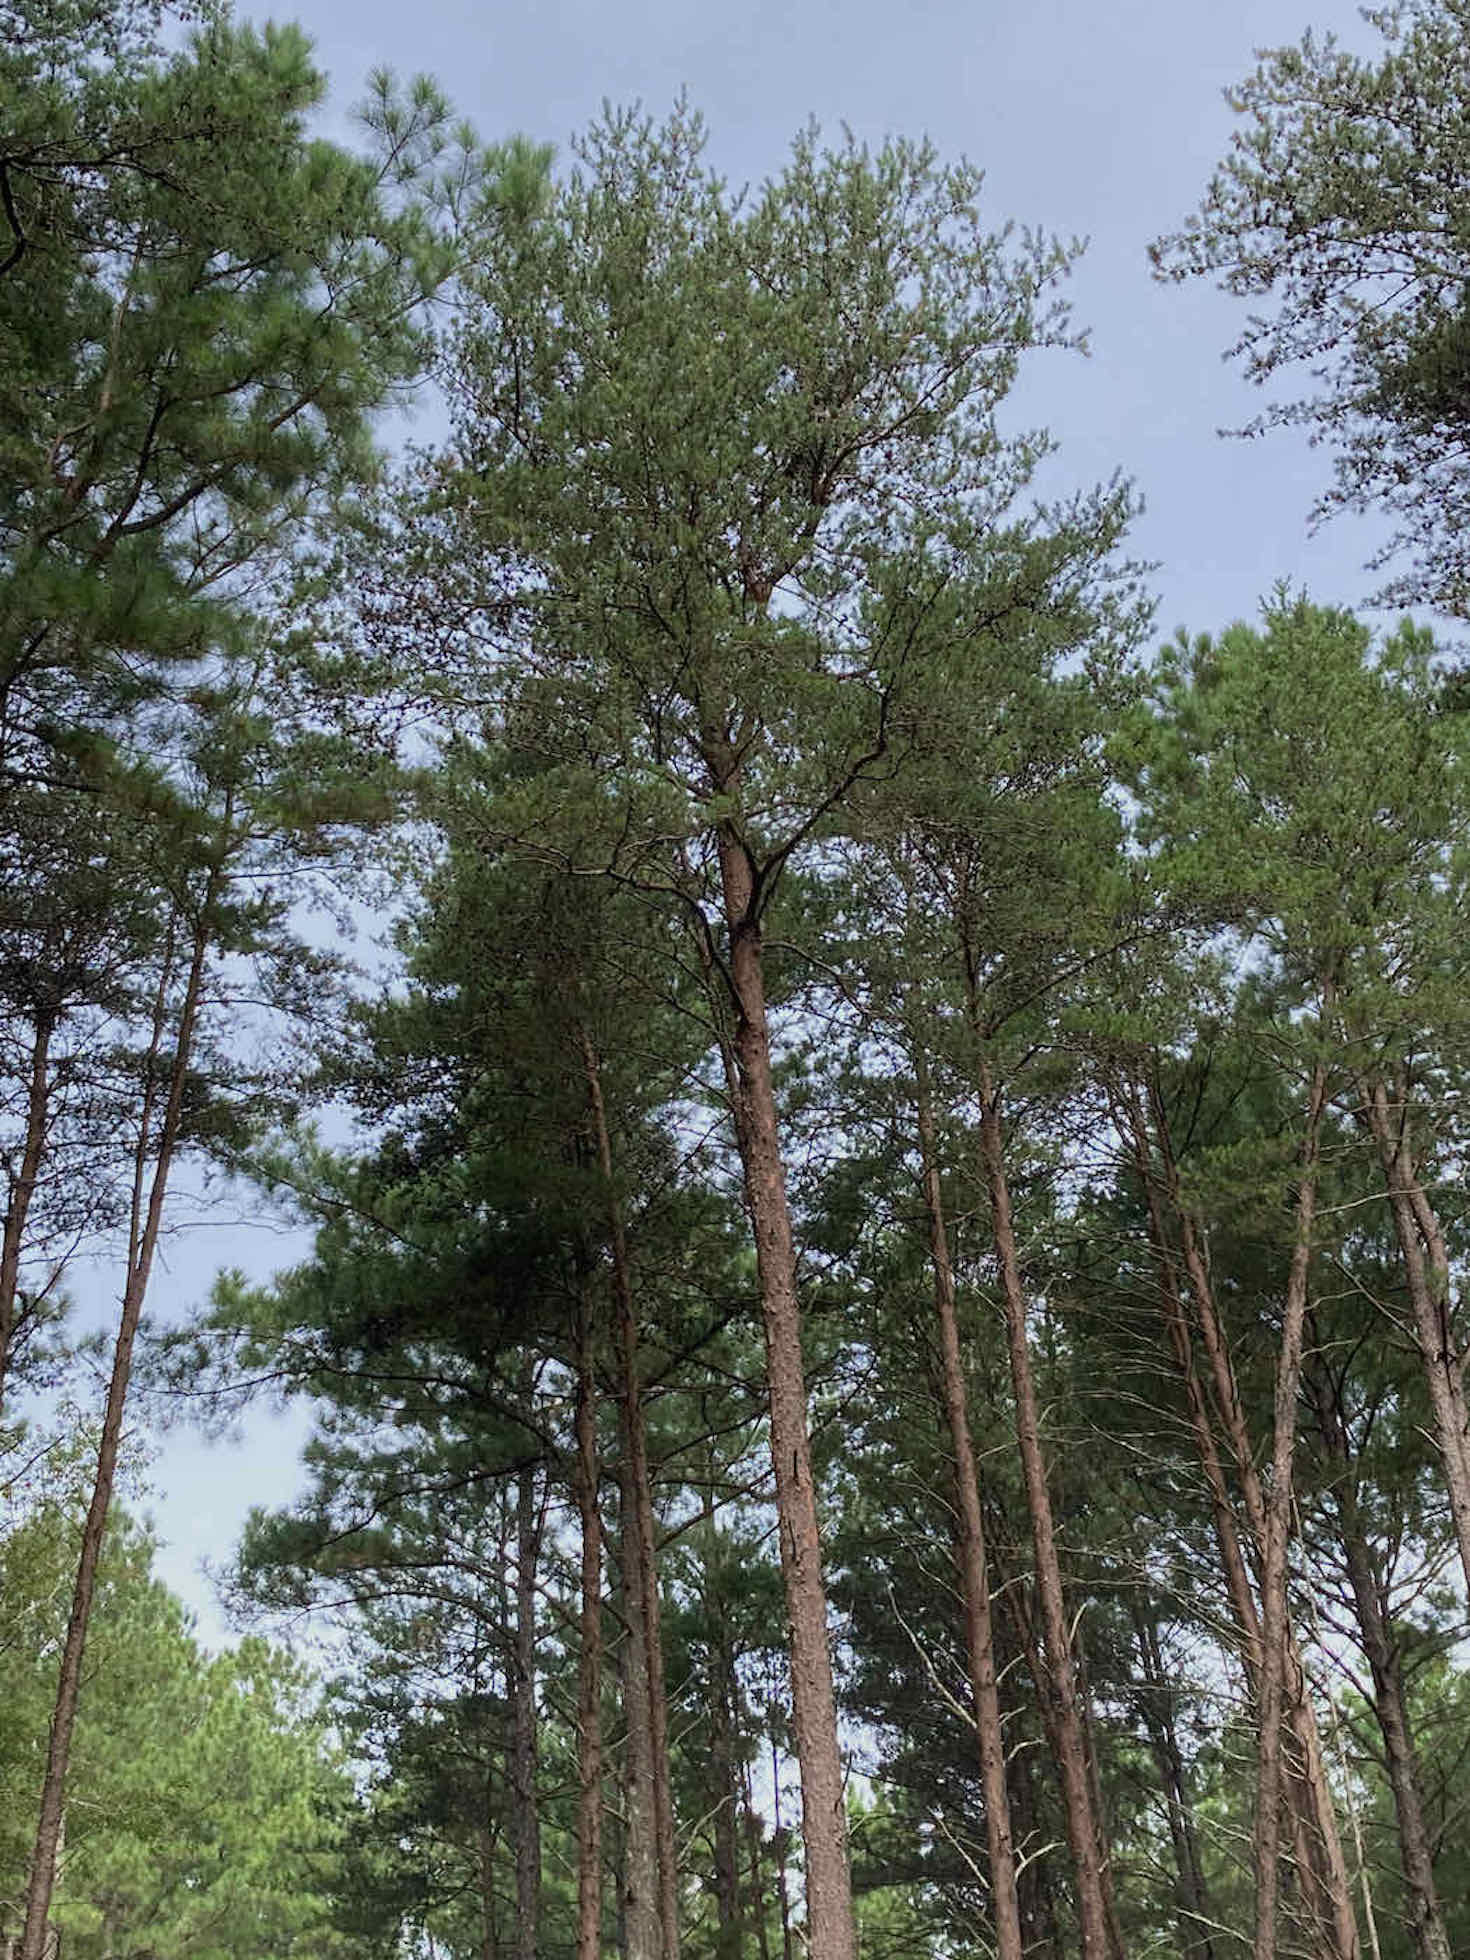 The Scientific Name is Pinus virginiana. You will likely hear them called Virginia Pine, Scrub Pine, Jersey Pine. This picture shows the Mature tree. On older trees, the older bark sloughs off to show an orangish color to the inner bark. of Pinus virginiana